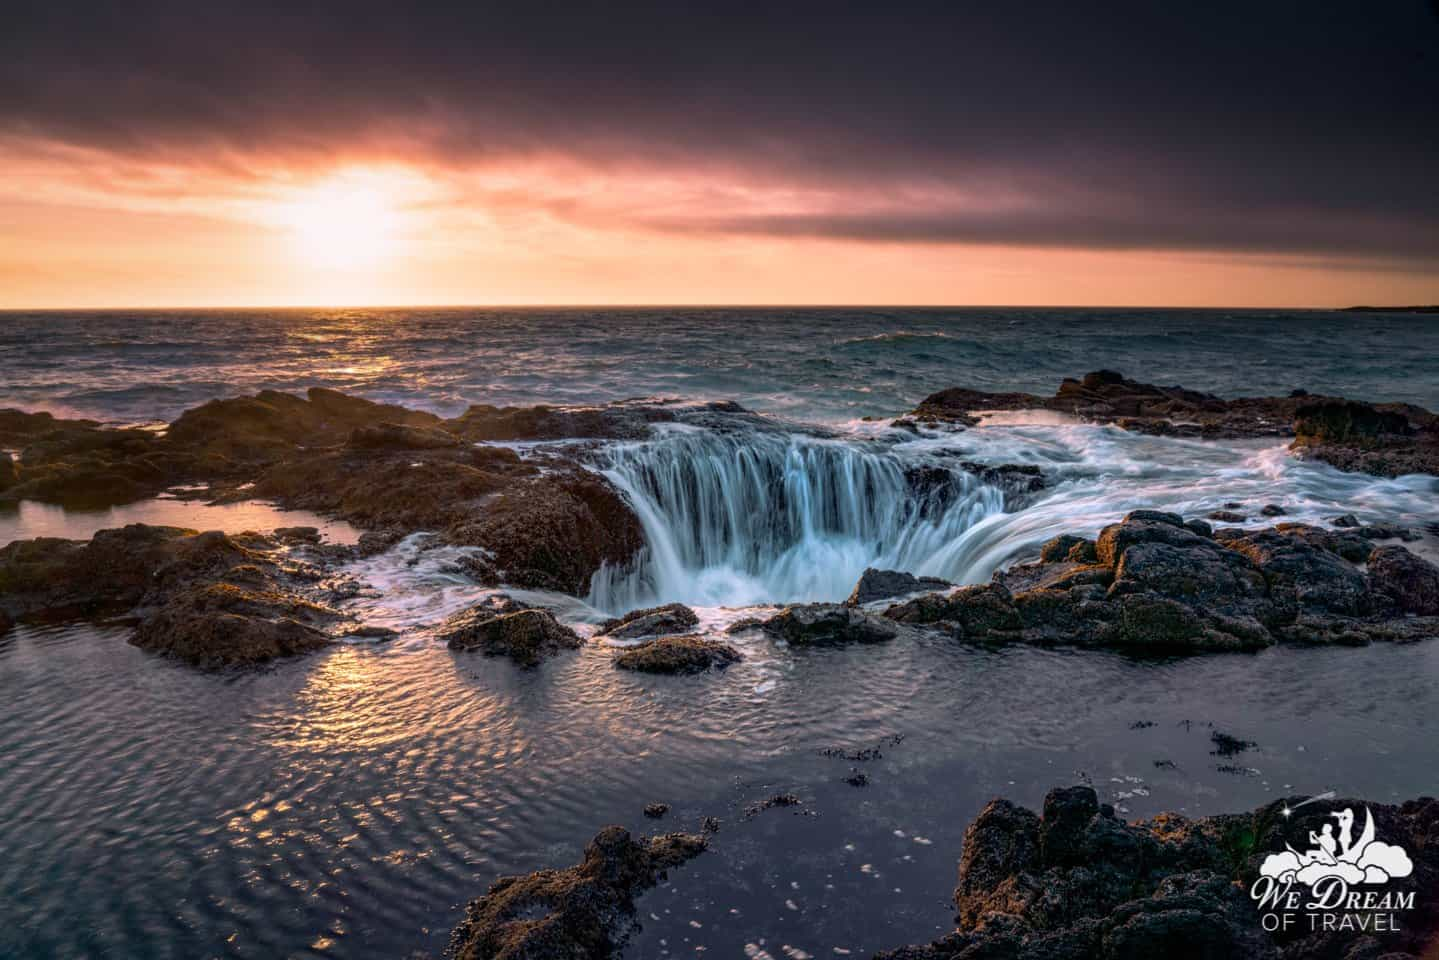 Thor's Well gets a bonus spot as we consider it perhaps the only ocean waterfall in the world.